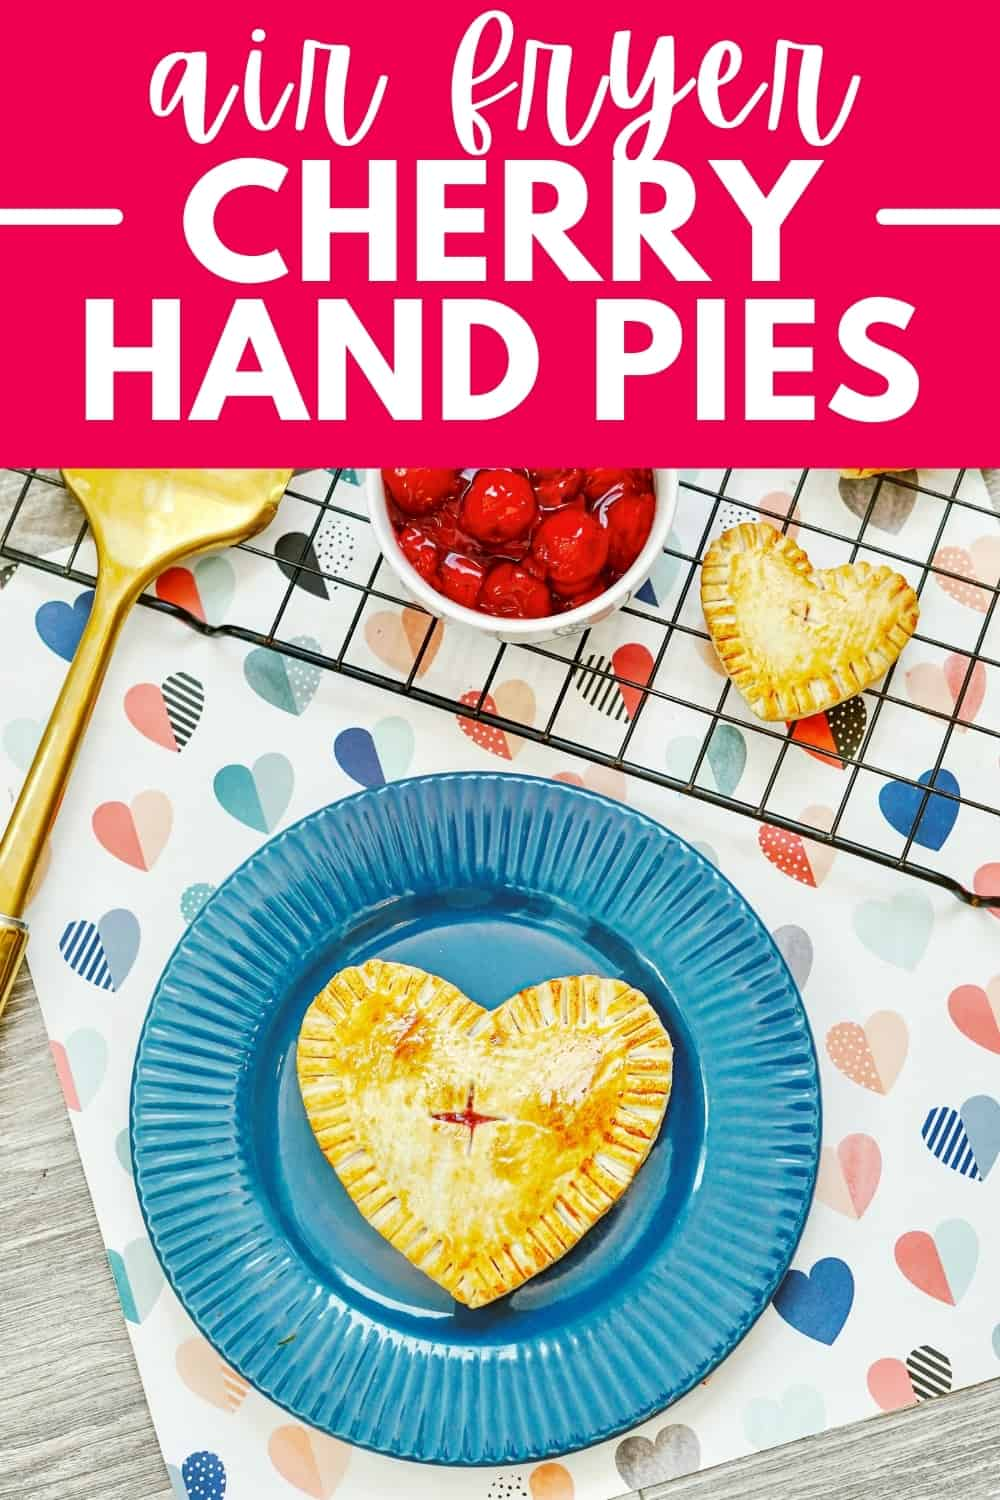 A hand pie on a blue plate on top of a napkin with hearts.